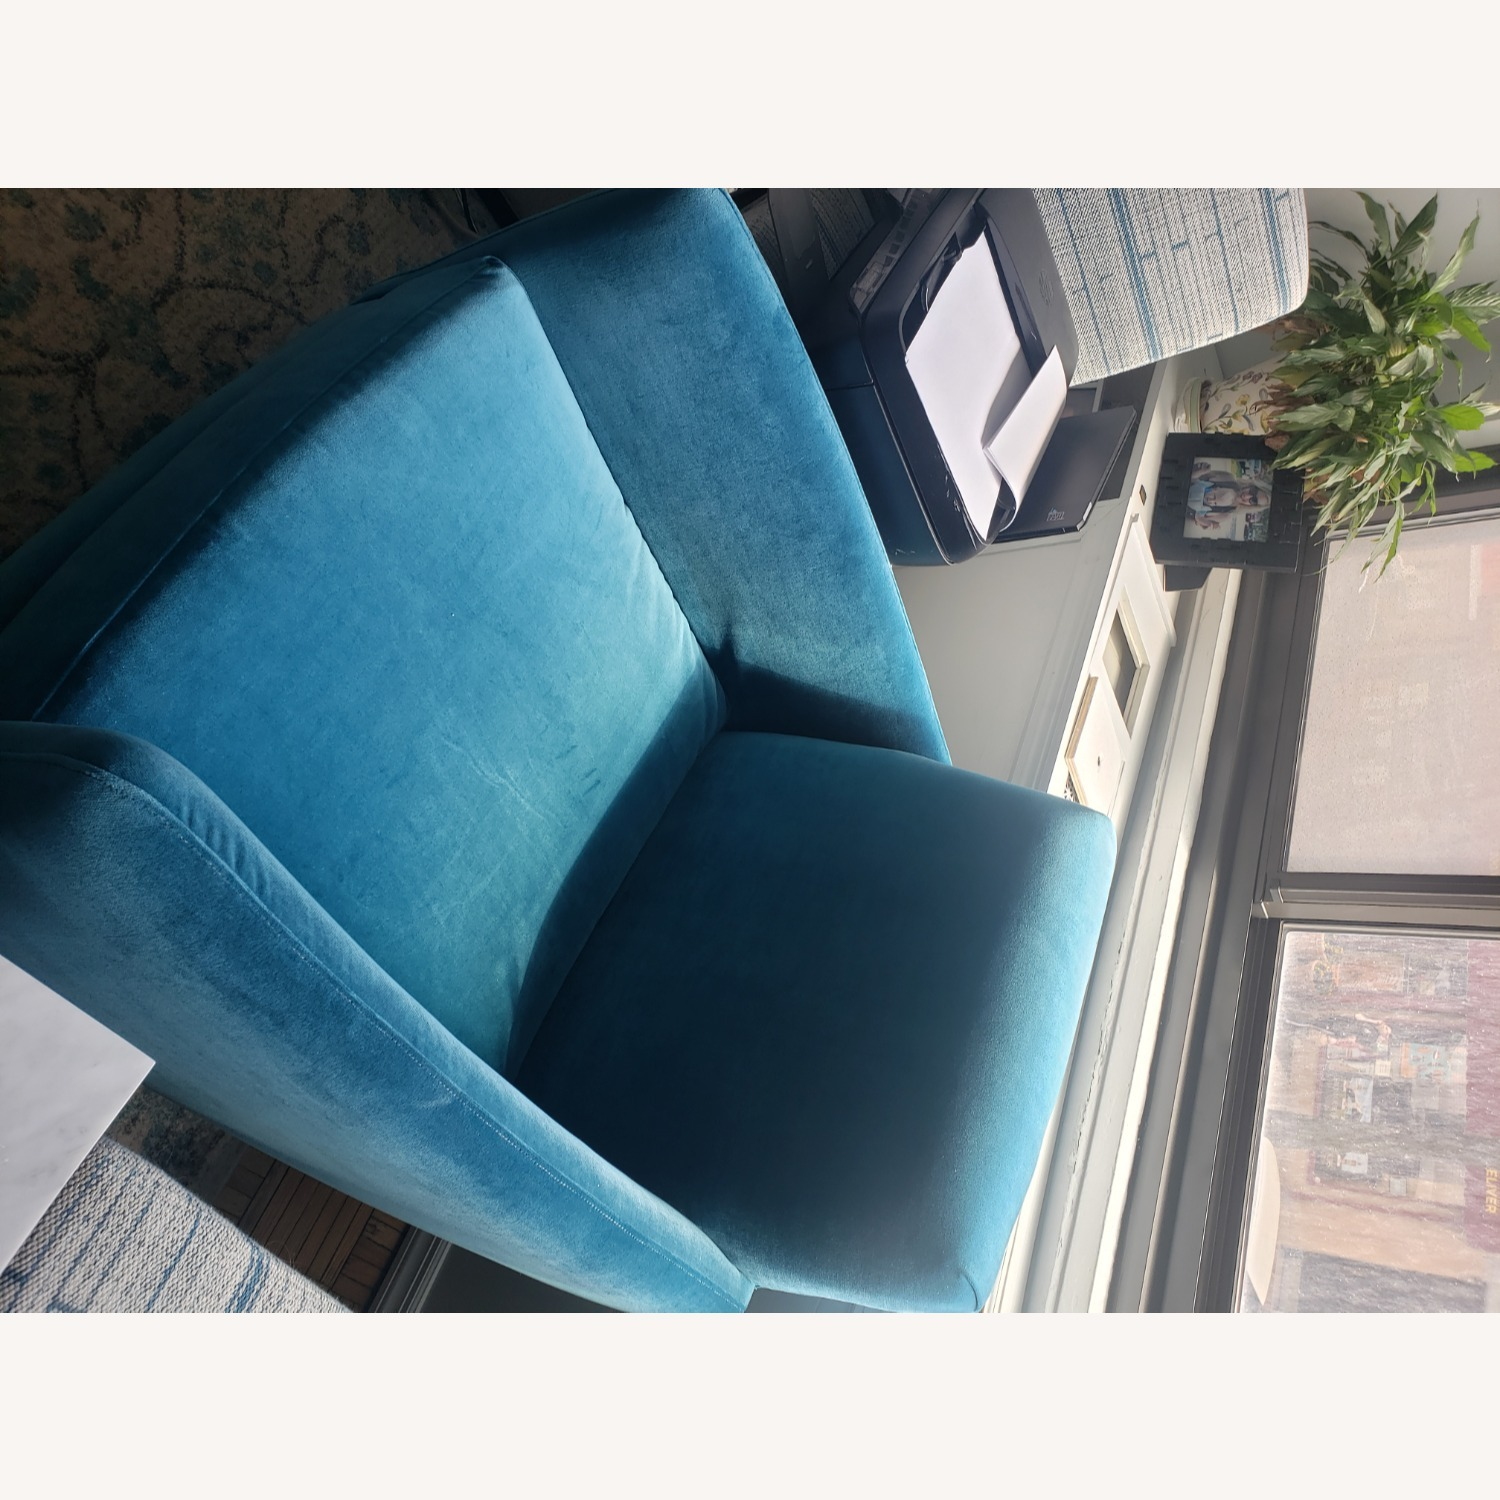 CB2 Parlour Chair in Cyan (Blue) Velvet - image-8